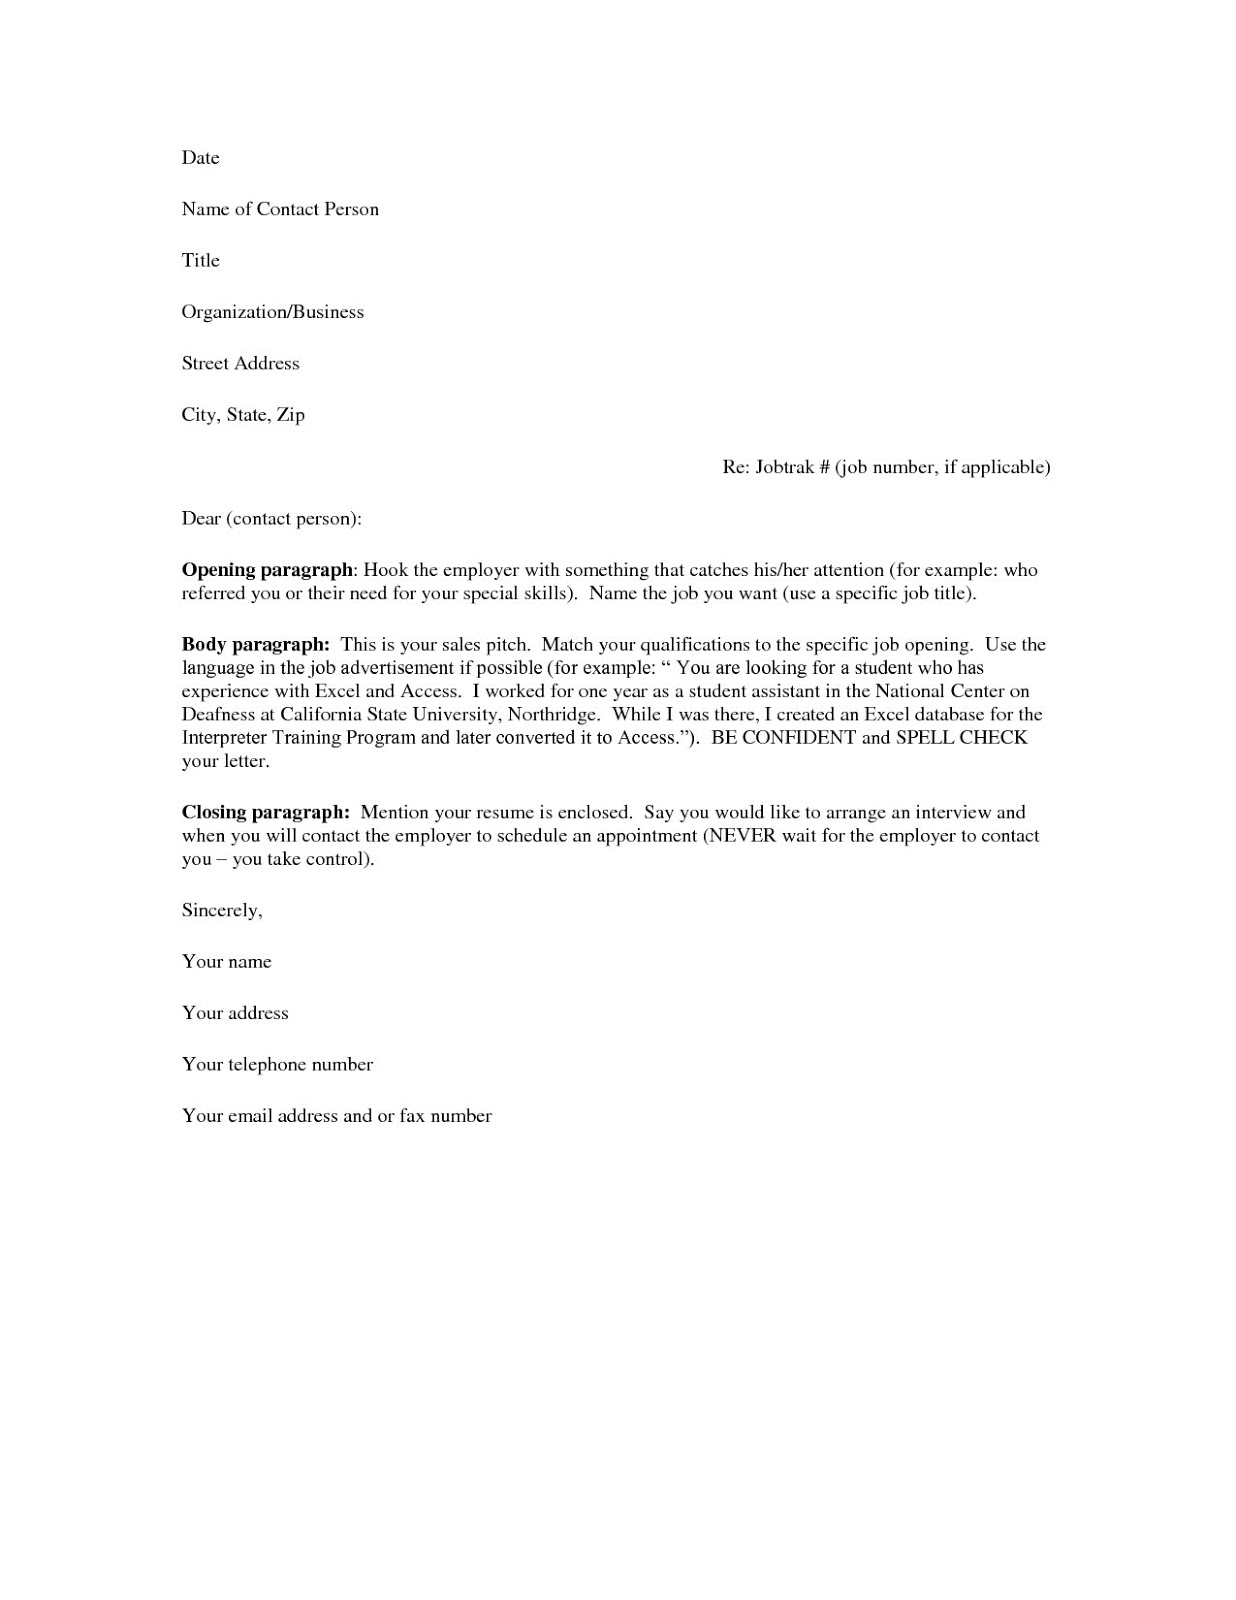 medical assisting cover letter sample templatex free sample resume cover a interview winning example of how - How To Make A Resume And Cover Letter For Free